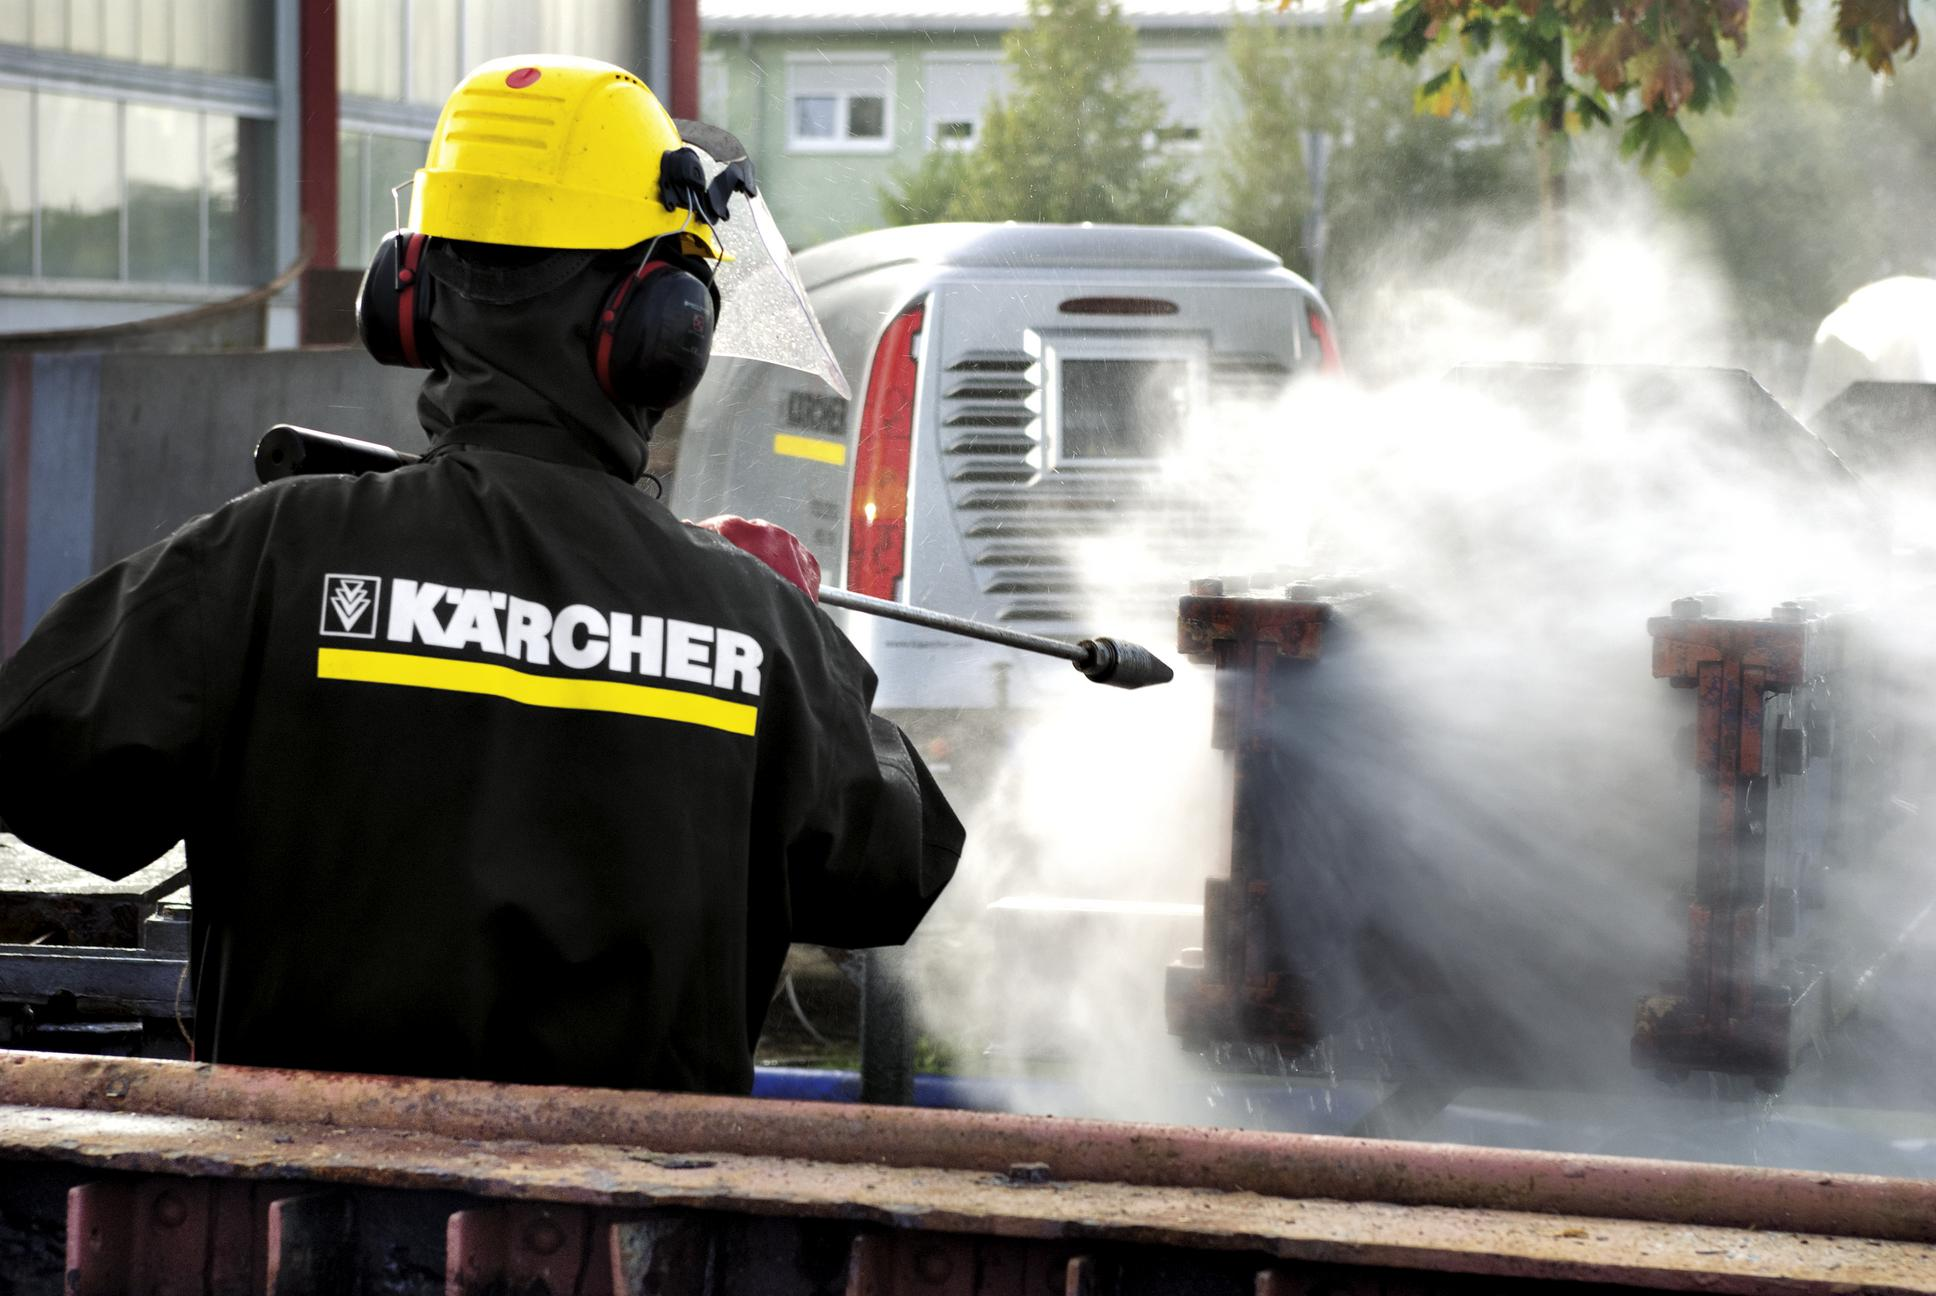 Why Kärcher Is The Expert in Cleaning